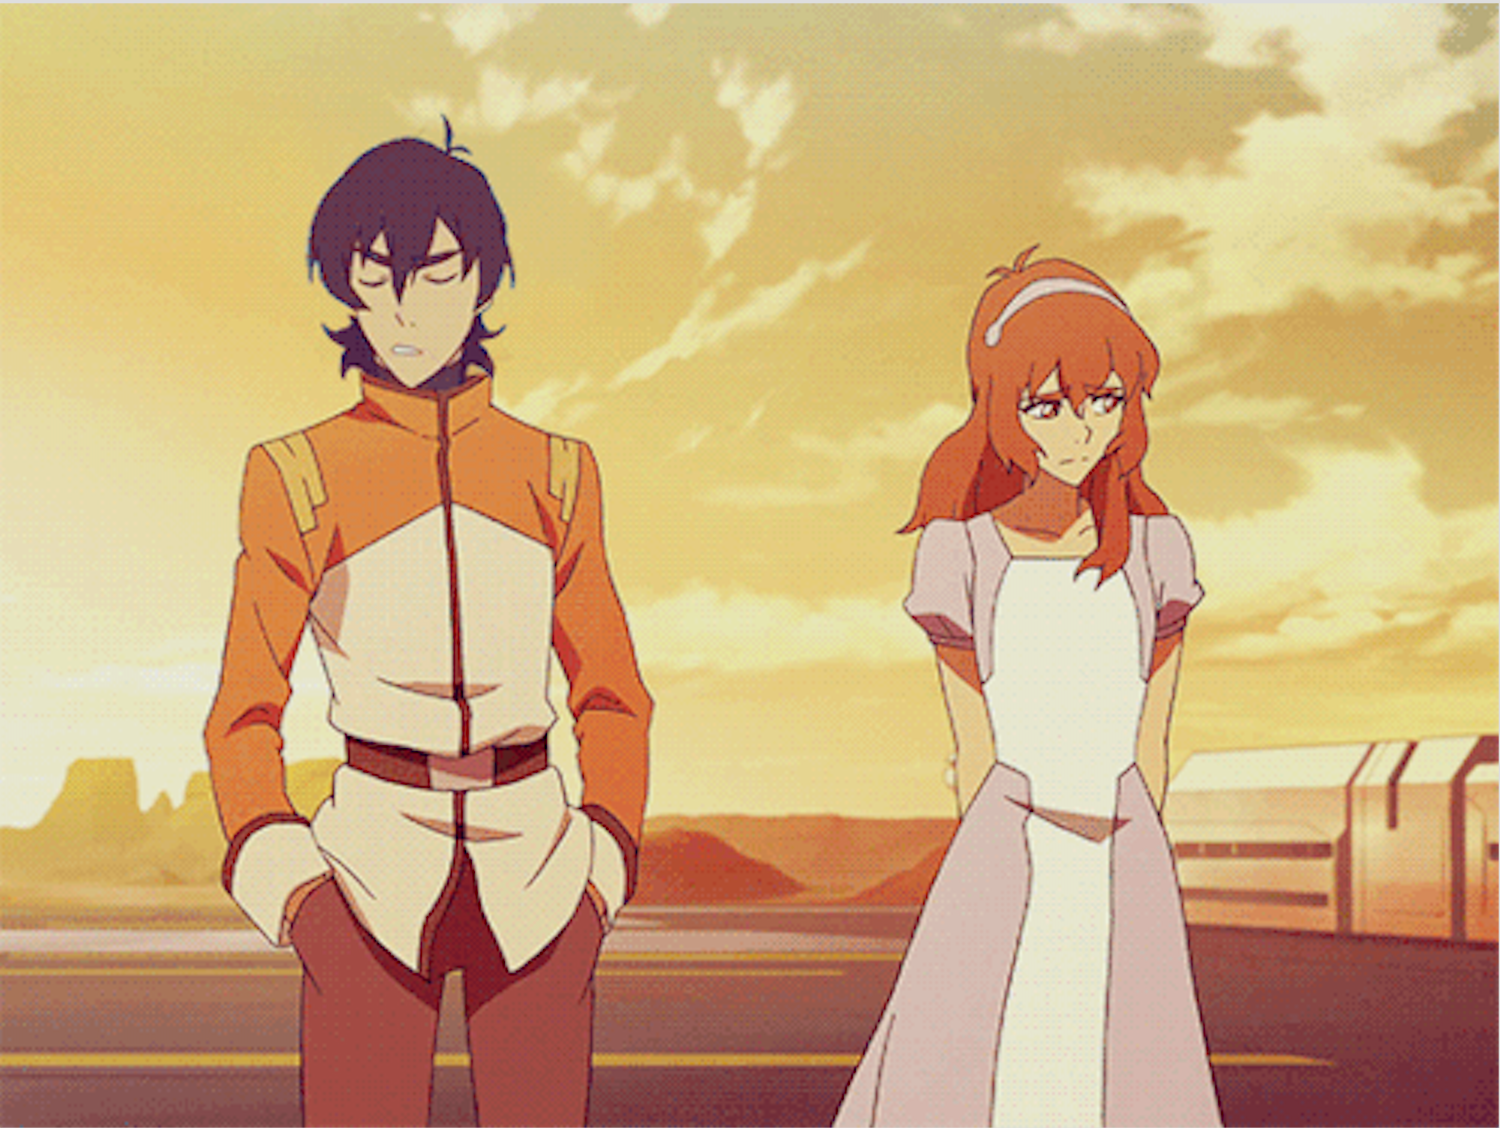 If Keith And Pidge Katie Holt Have Met In Galaxy Garrison Kerberos Mission Launch From Voltron Legendary Defen Voltron Voltron Legendary Defender Voltron Funny